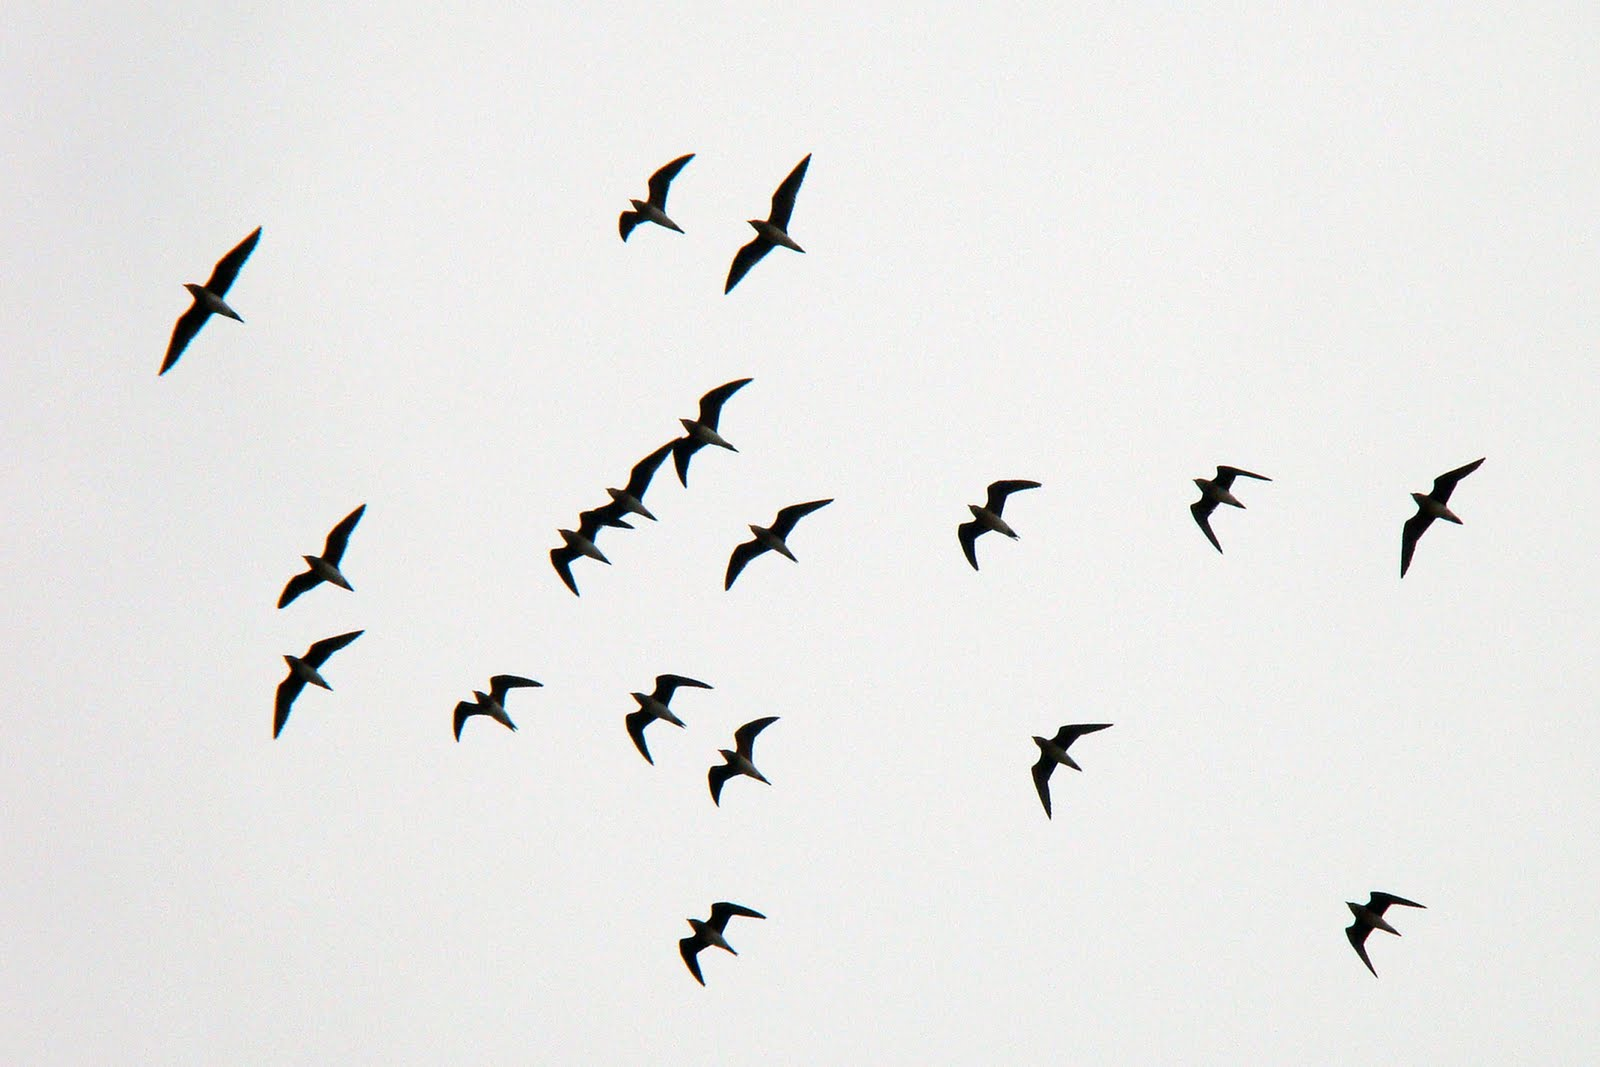 how to draw a flock of birds flying